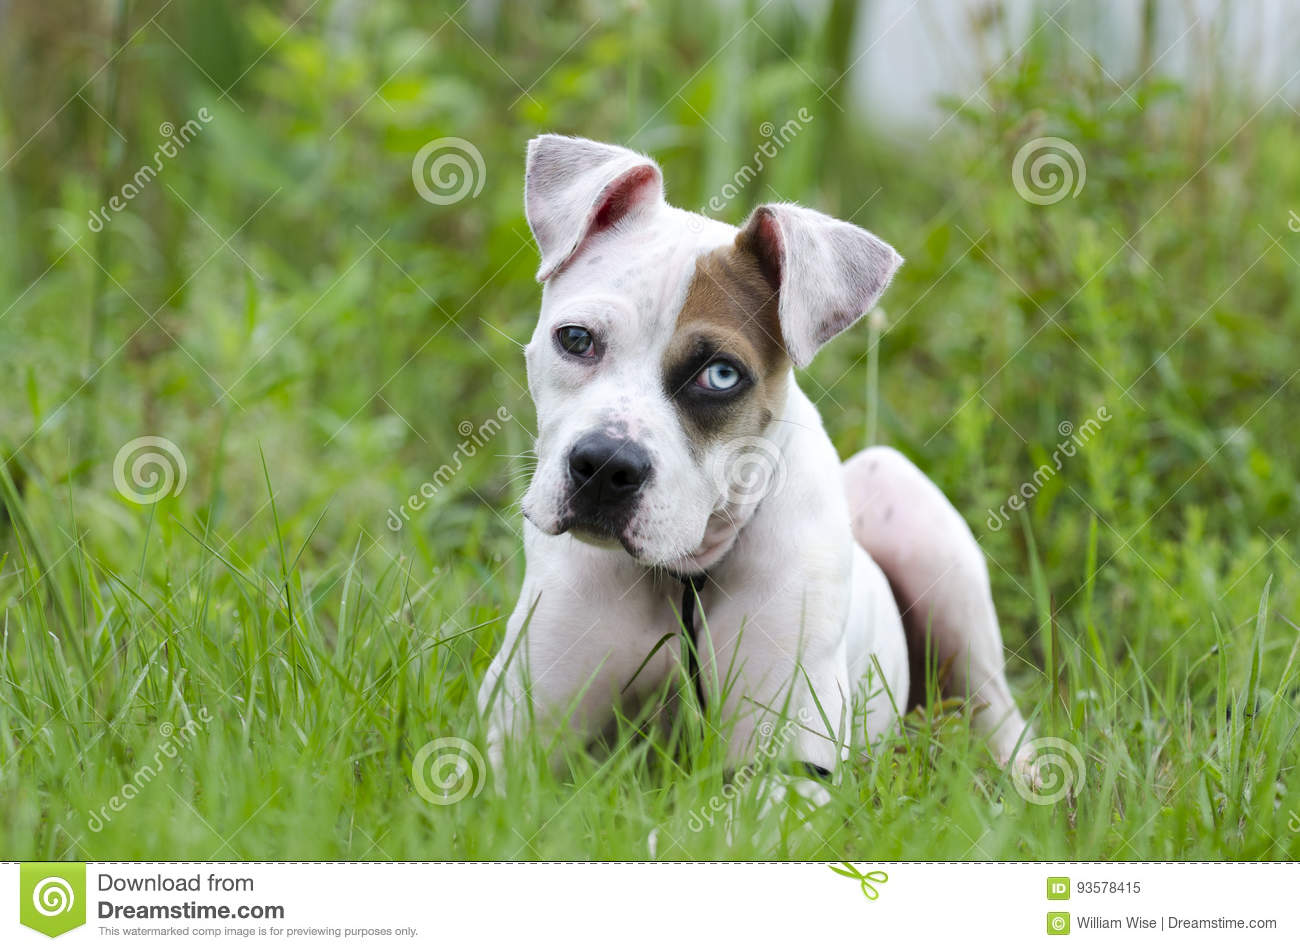 American Bulldog Mixed Breed Puppy With Blue Eye Stock Image - Image